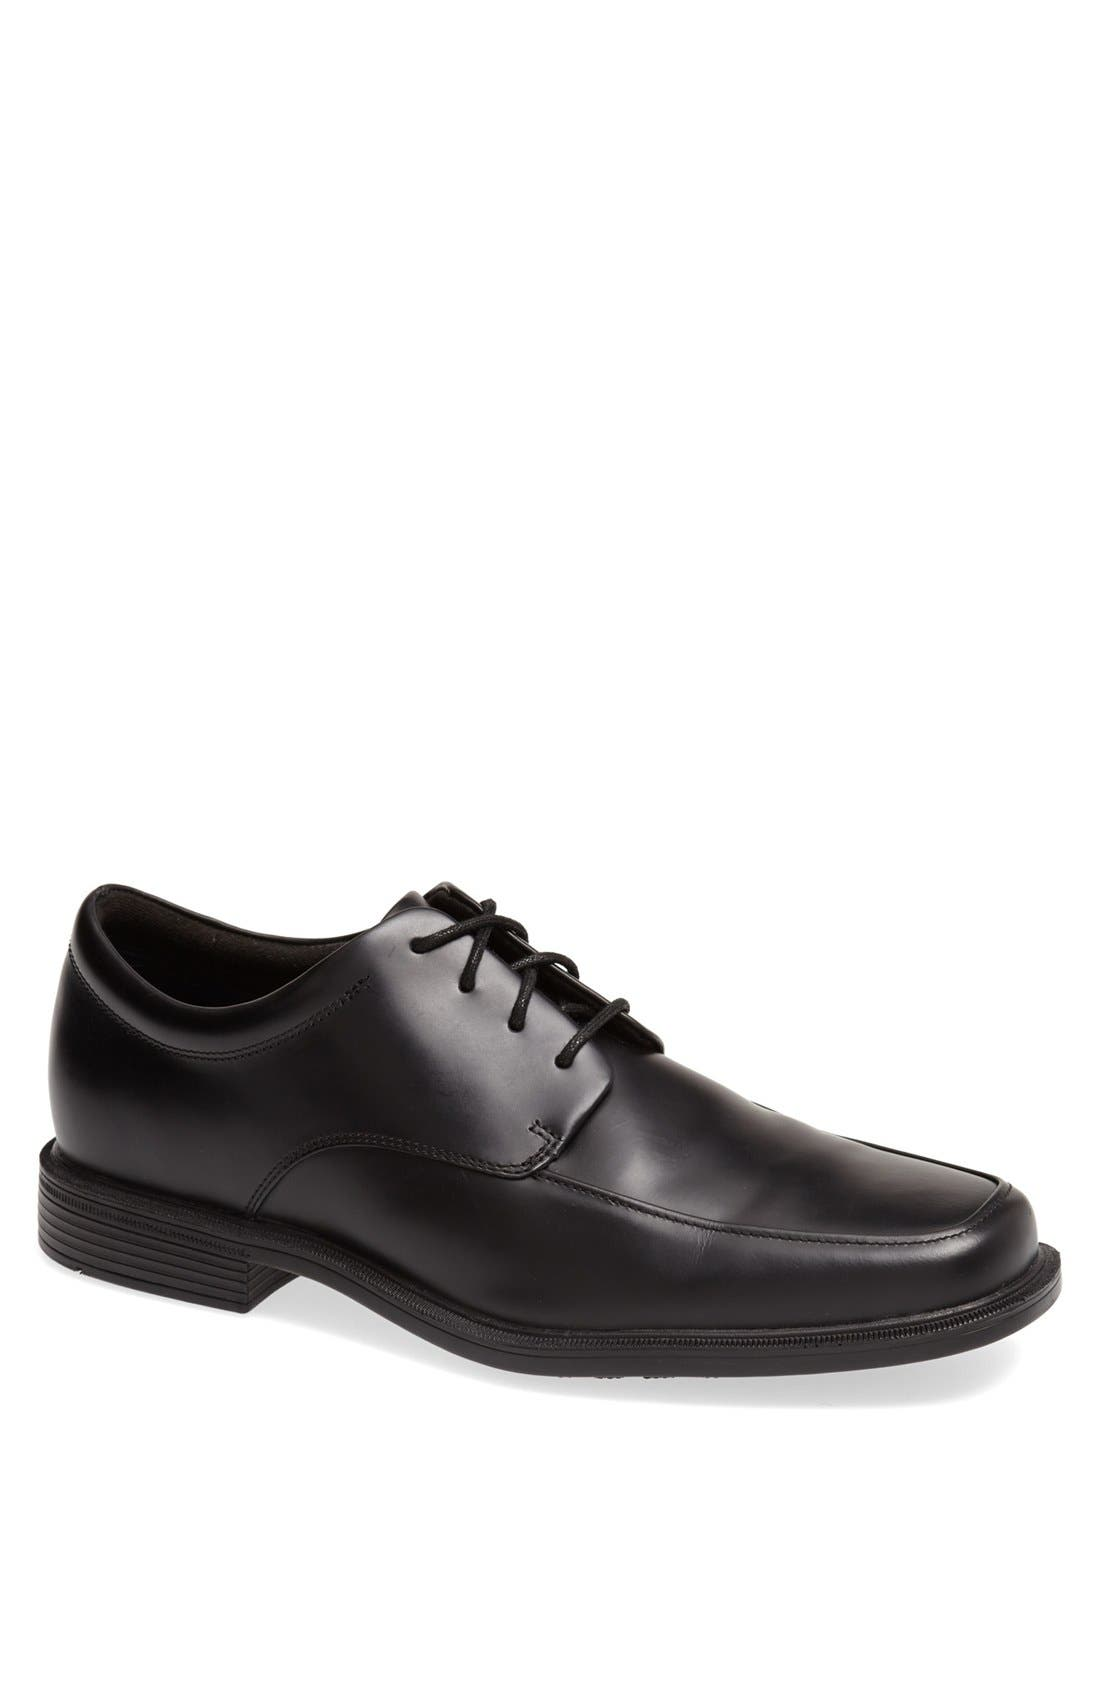 Main Image - Rockport 'Evander' Oxford